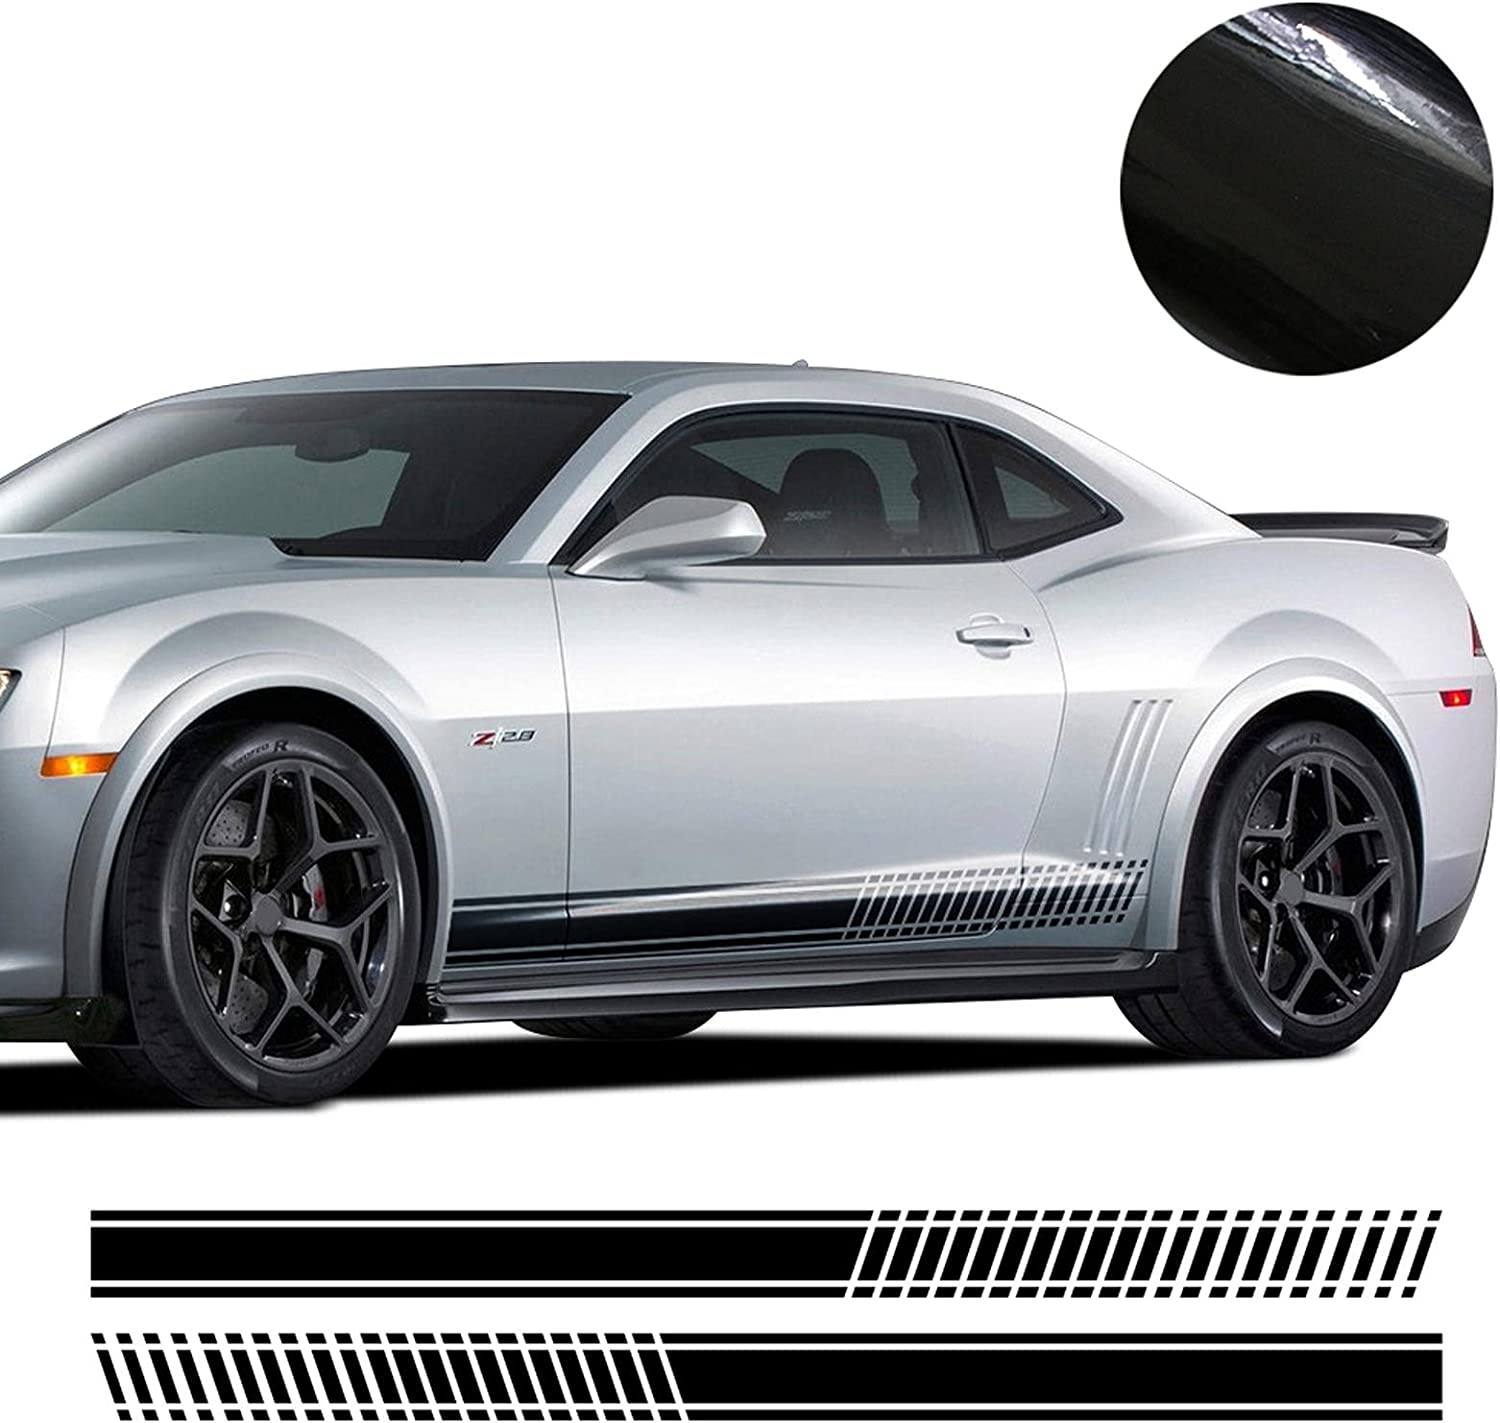 XKHSD Car Side Over item handling Skirt Challenge the lowest price of Japan ☆ Stripe Decal for Camaro Decals L Chevrolet